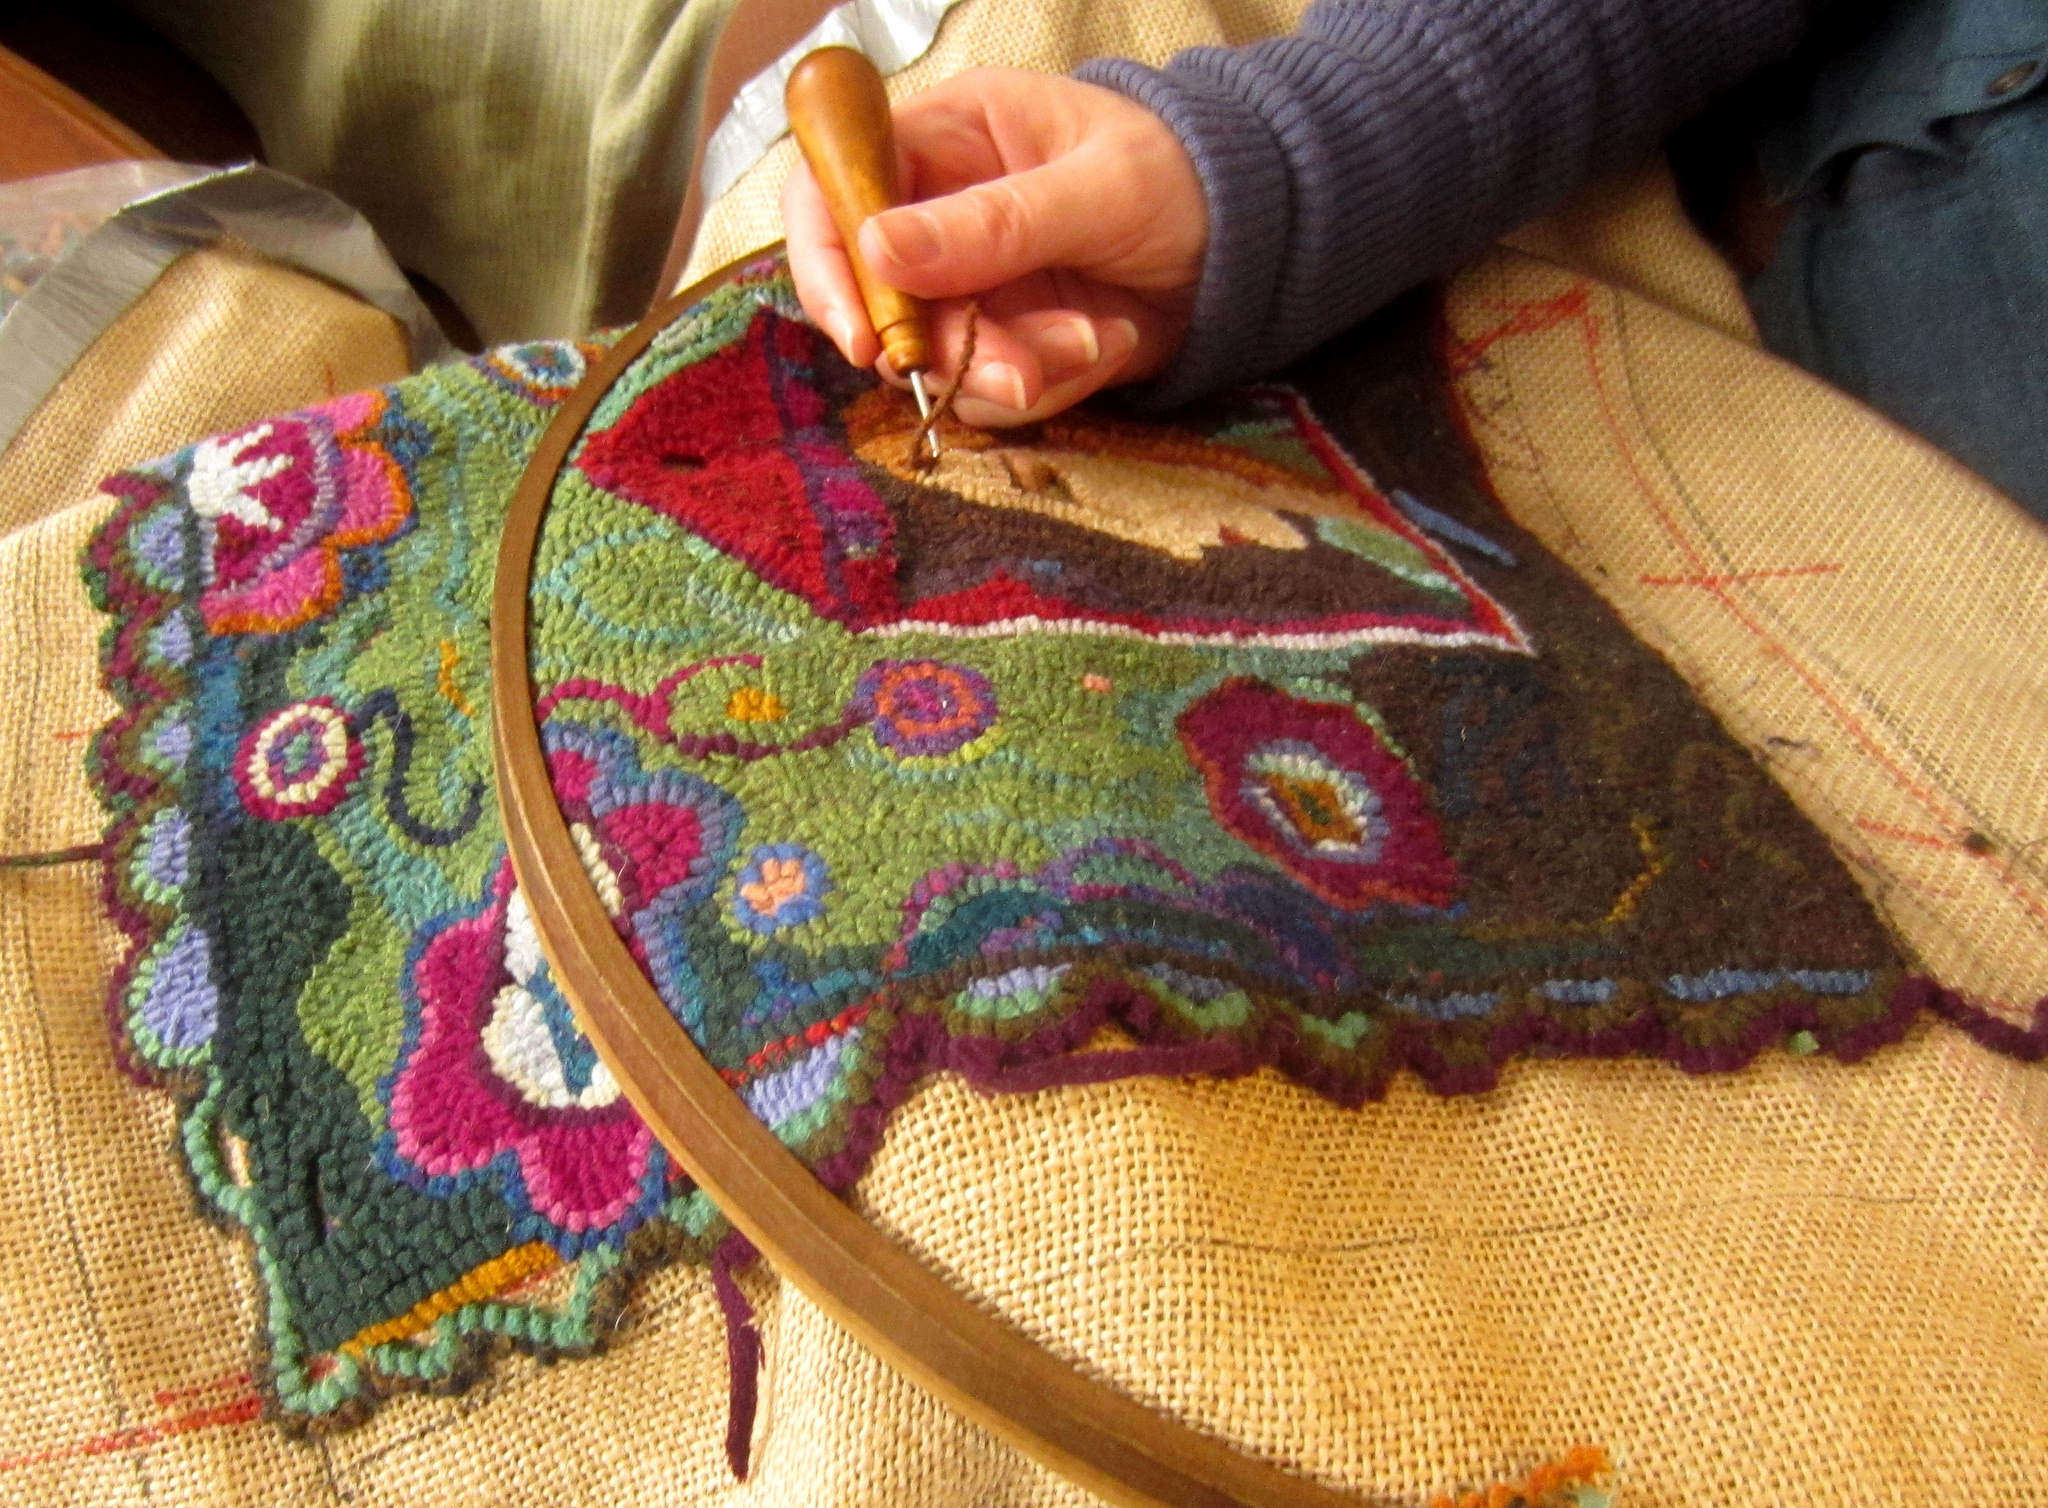 Hand hooked area rugs - how they are made